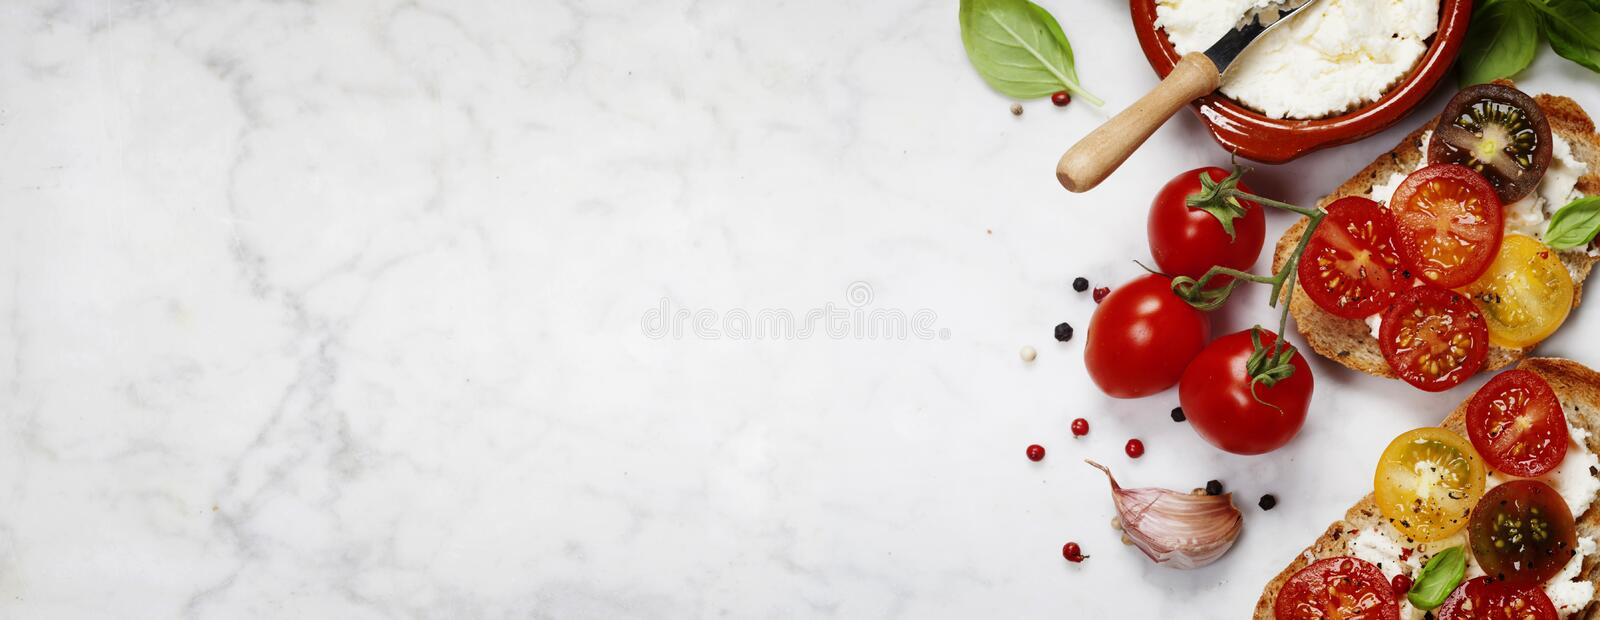 Tomato and basil sandwiches royalty free stock photo